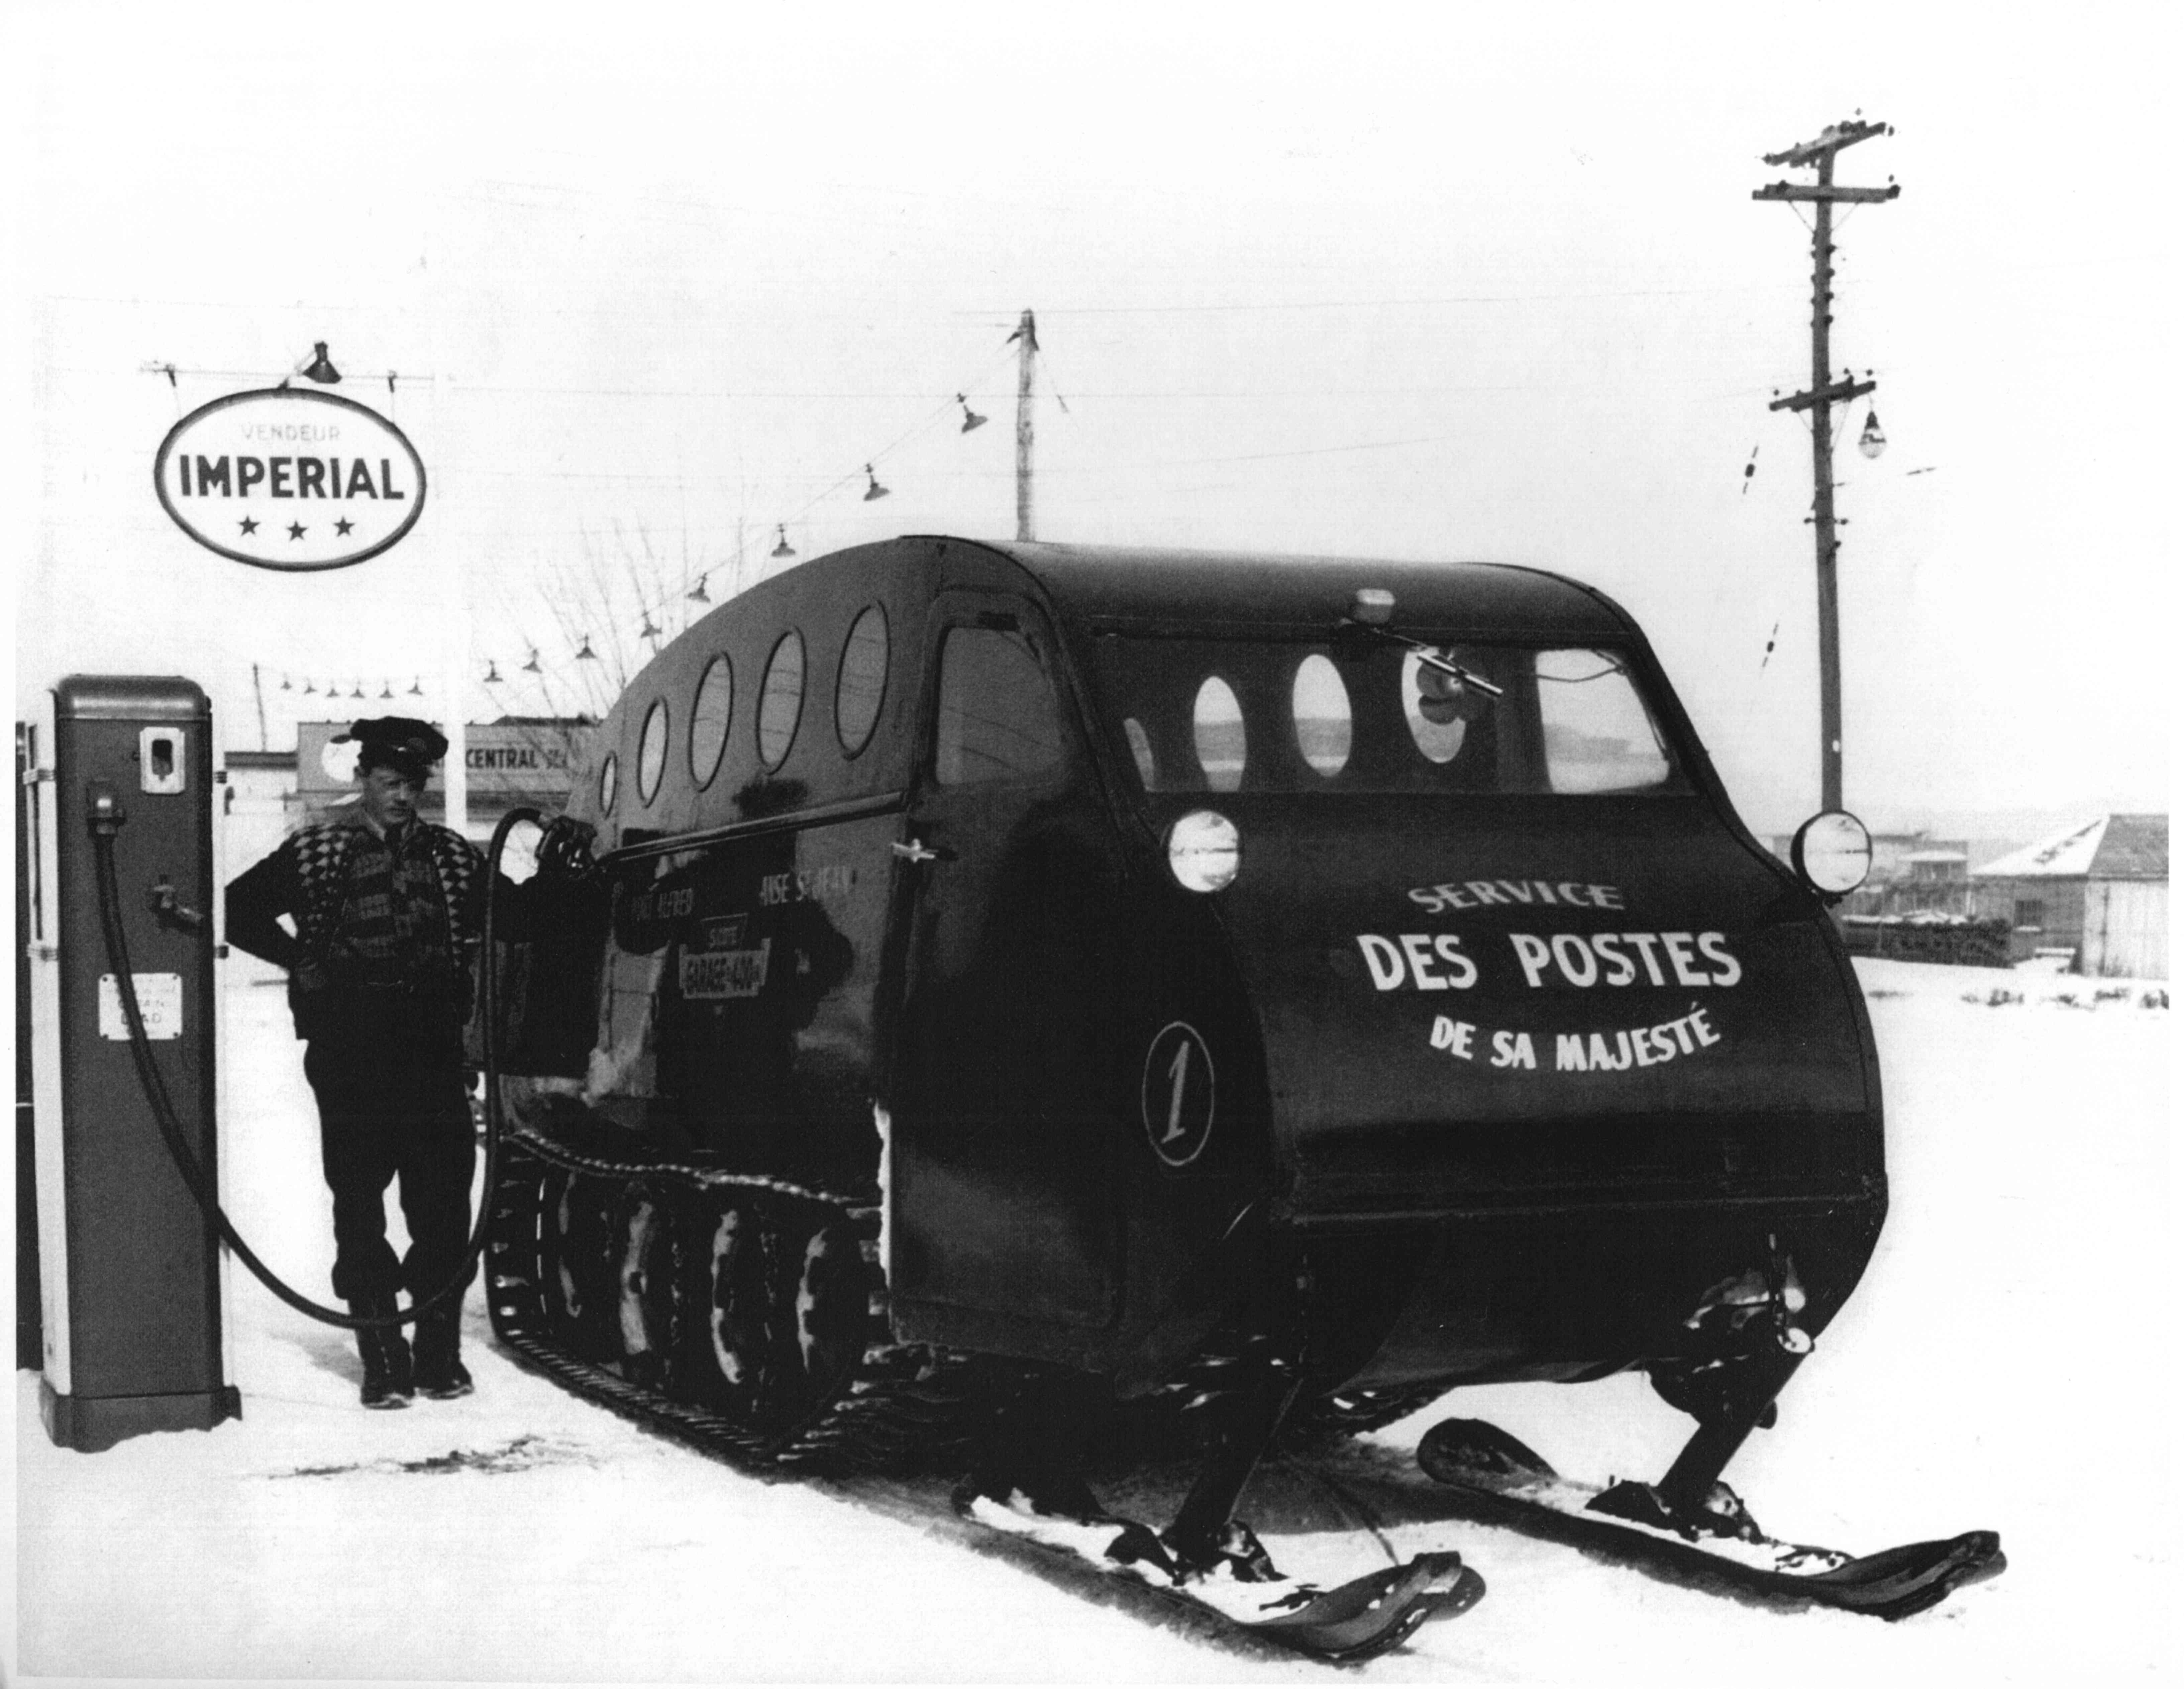 Bombardier snowmobile